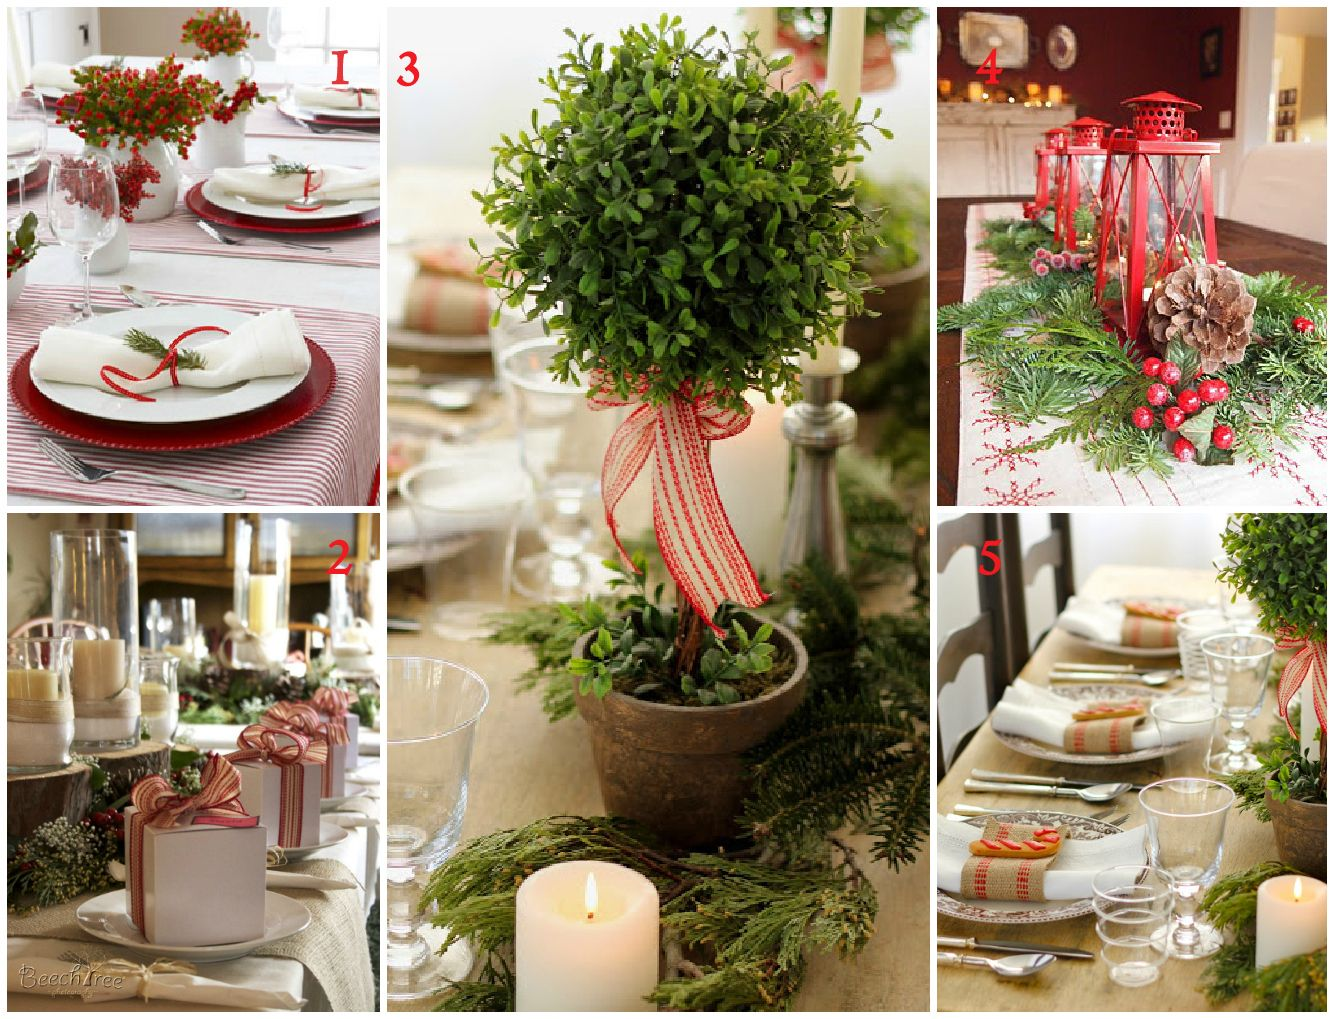 creative ways to set up table buffet | love the gift idea ... Creative Ways To Set Up Table Buffet Love The Gift Idea & Extraordinary Christmas Table Settings Pinterest Pictures - Best ...